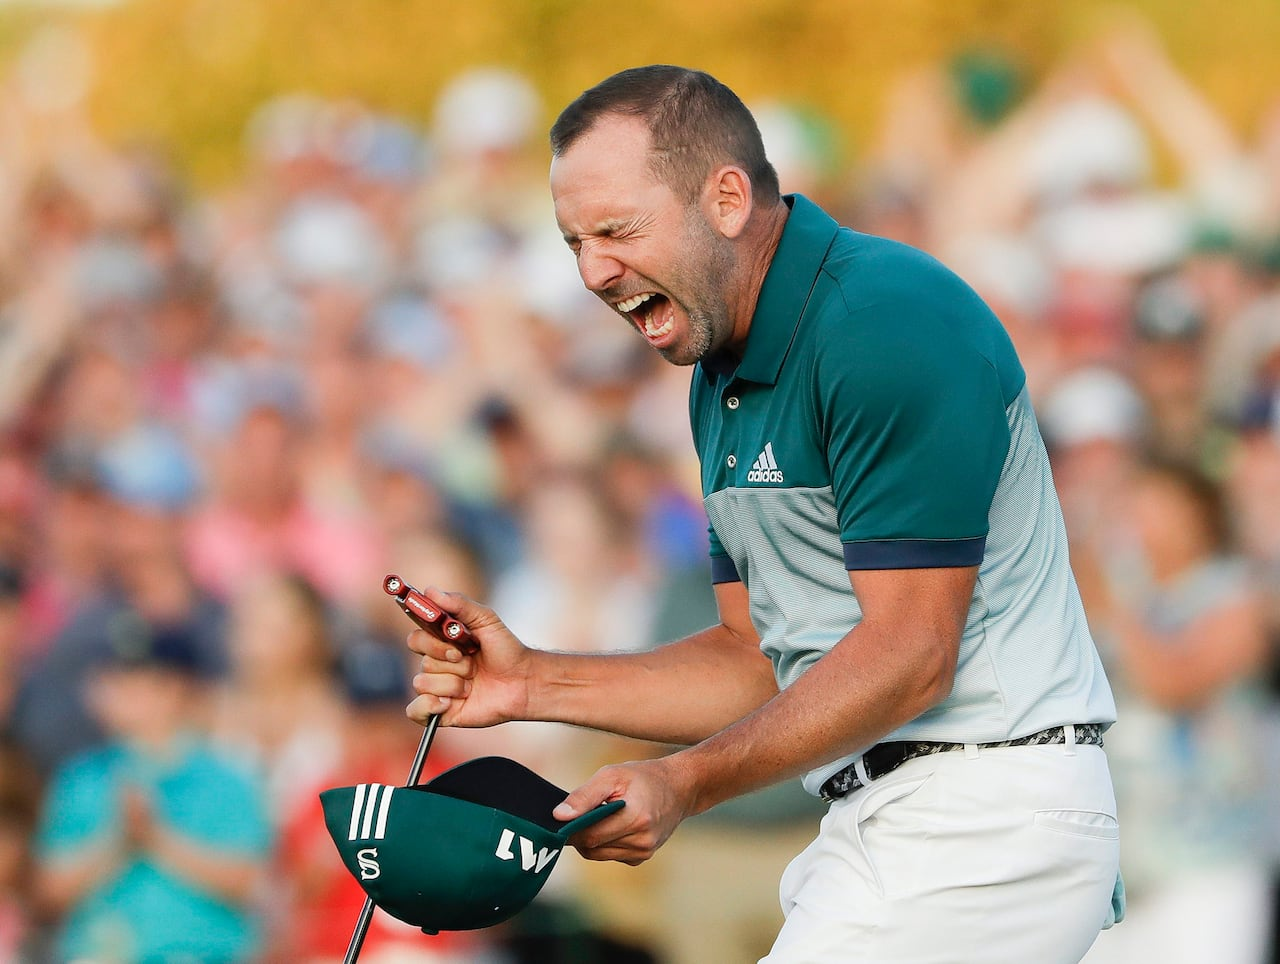 563869e74ce4 Sergio Garcia wins Masters in playoff for 1st major title   CBC Sports